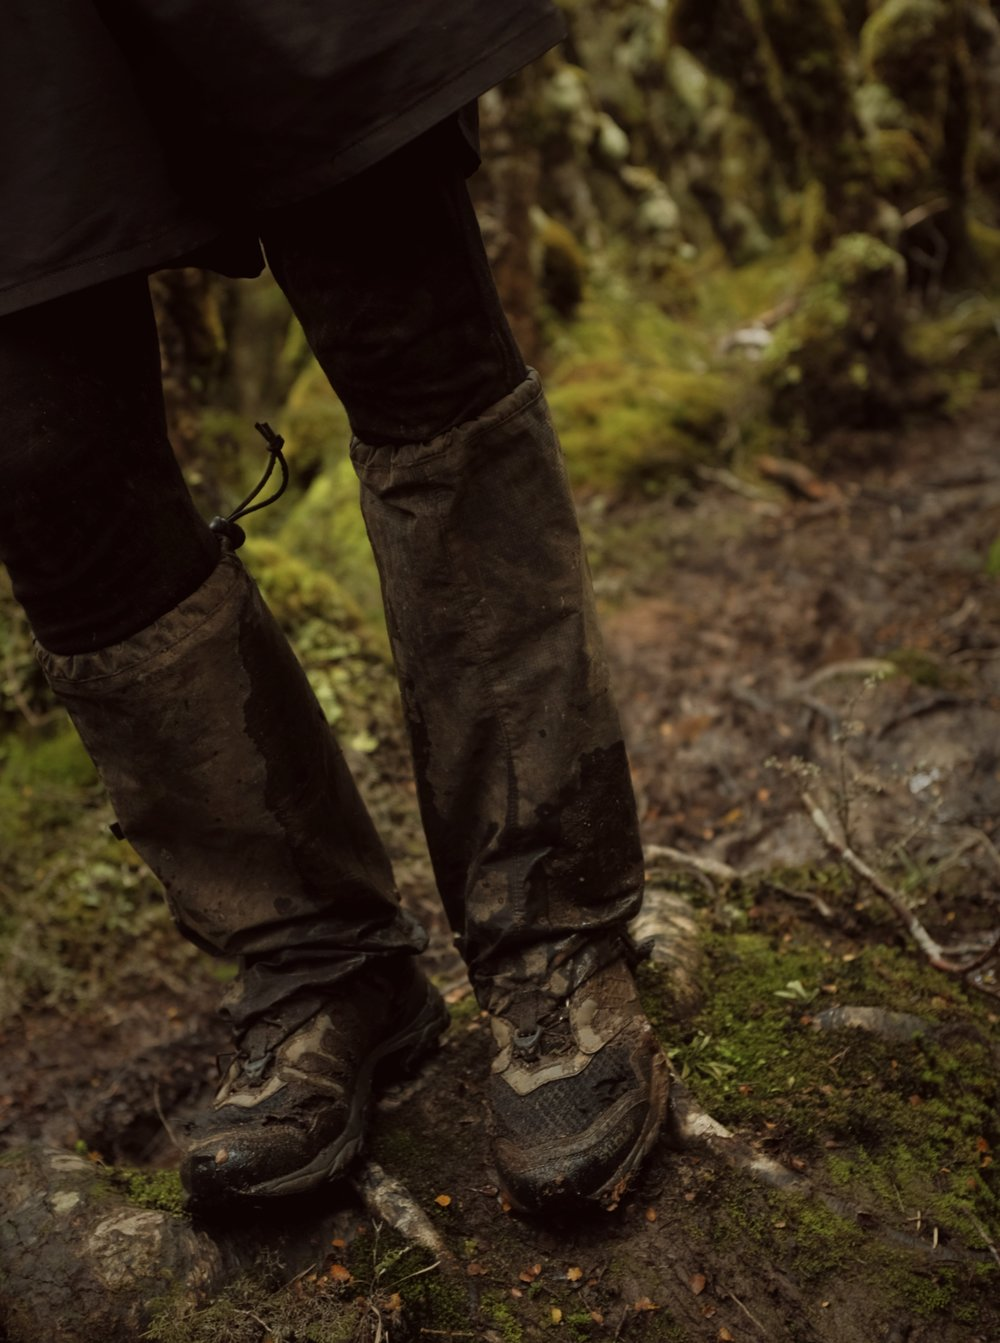 Ripped, muddy, and wet.